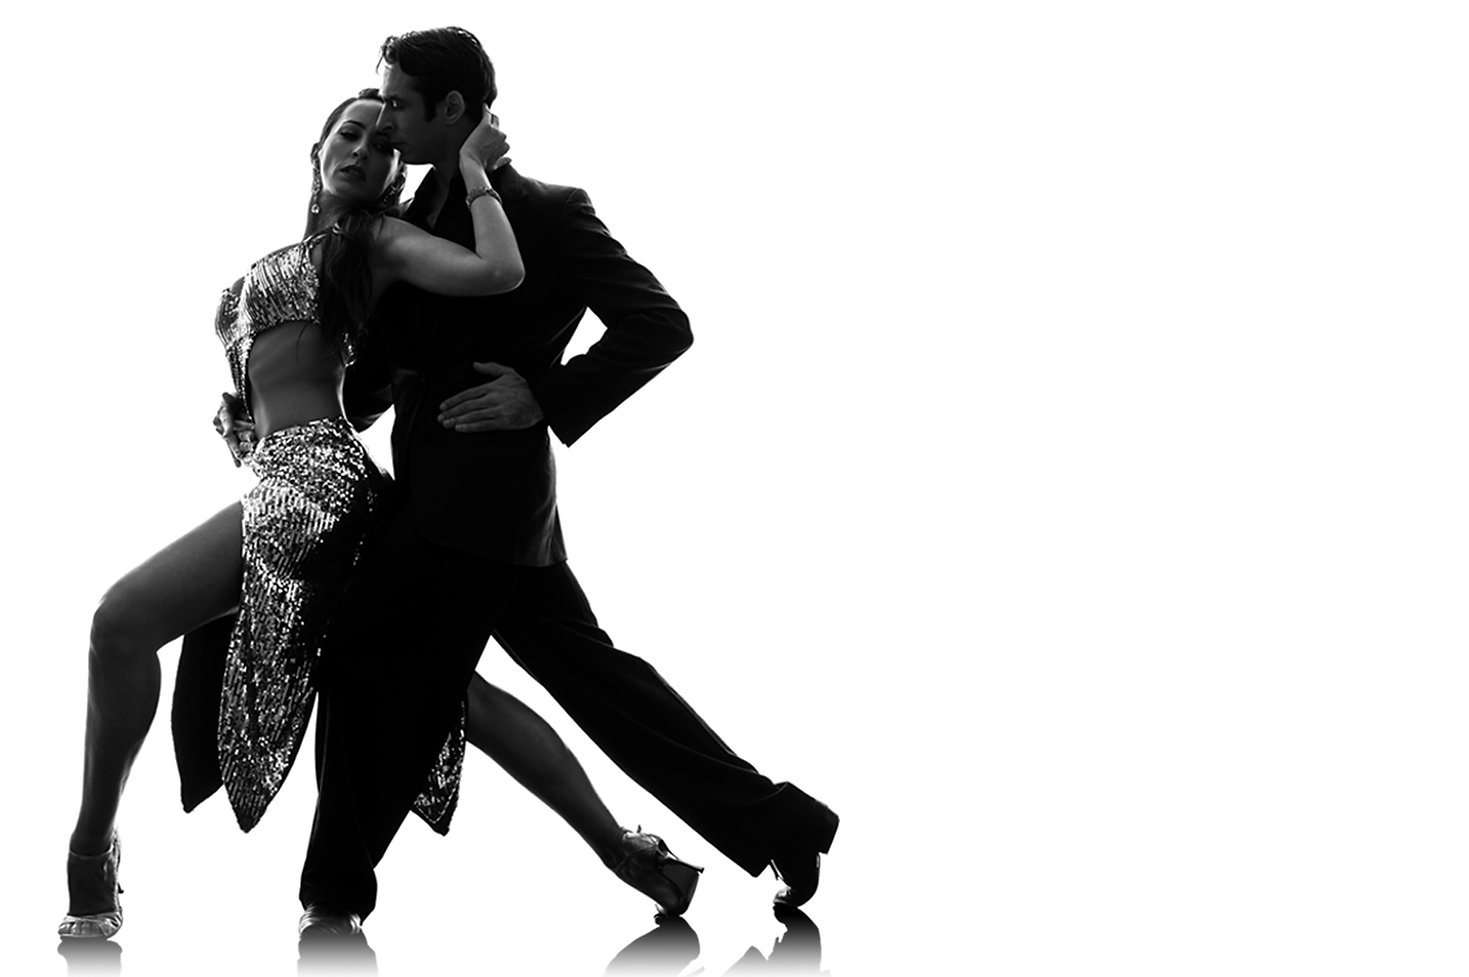 Dancing Couple in Orange County, Tustin CA, dance studio Century Dancesport Logo, Ballroom, Latin, Smootth, Rhythm, Passion